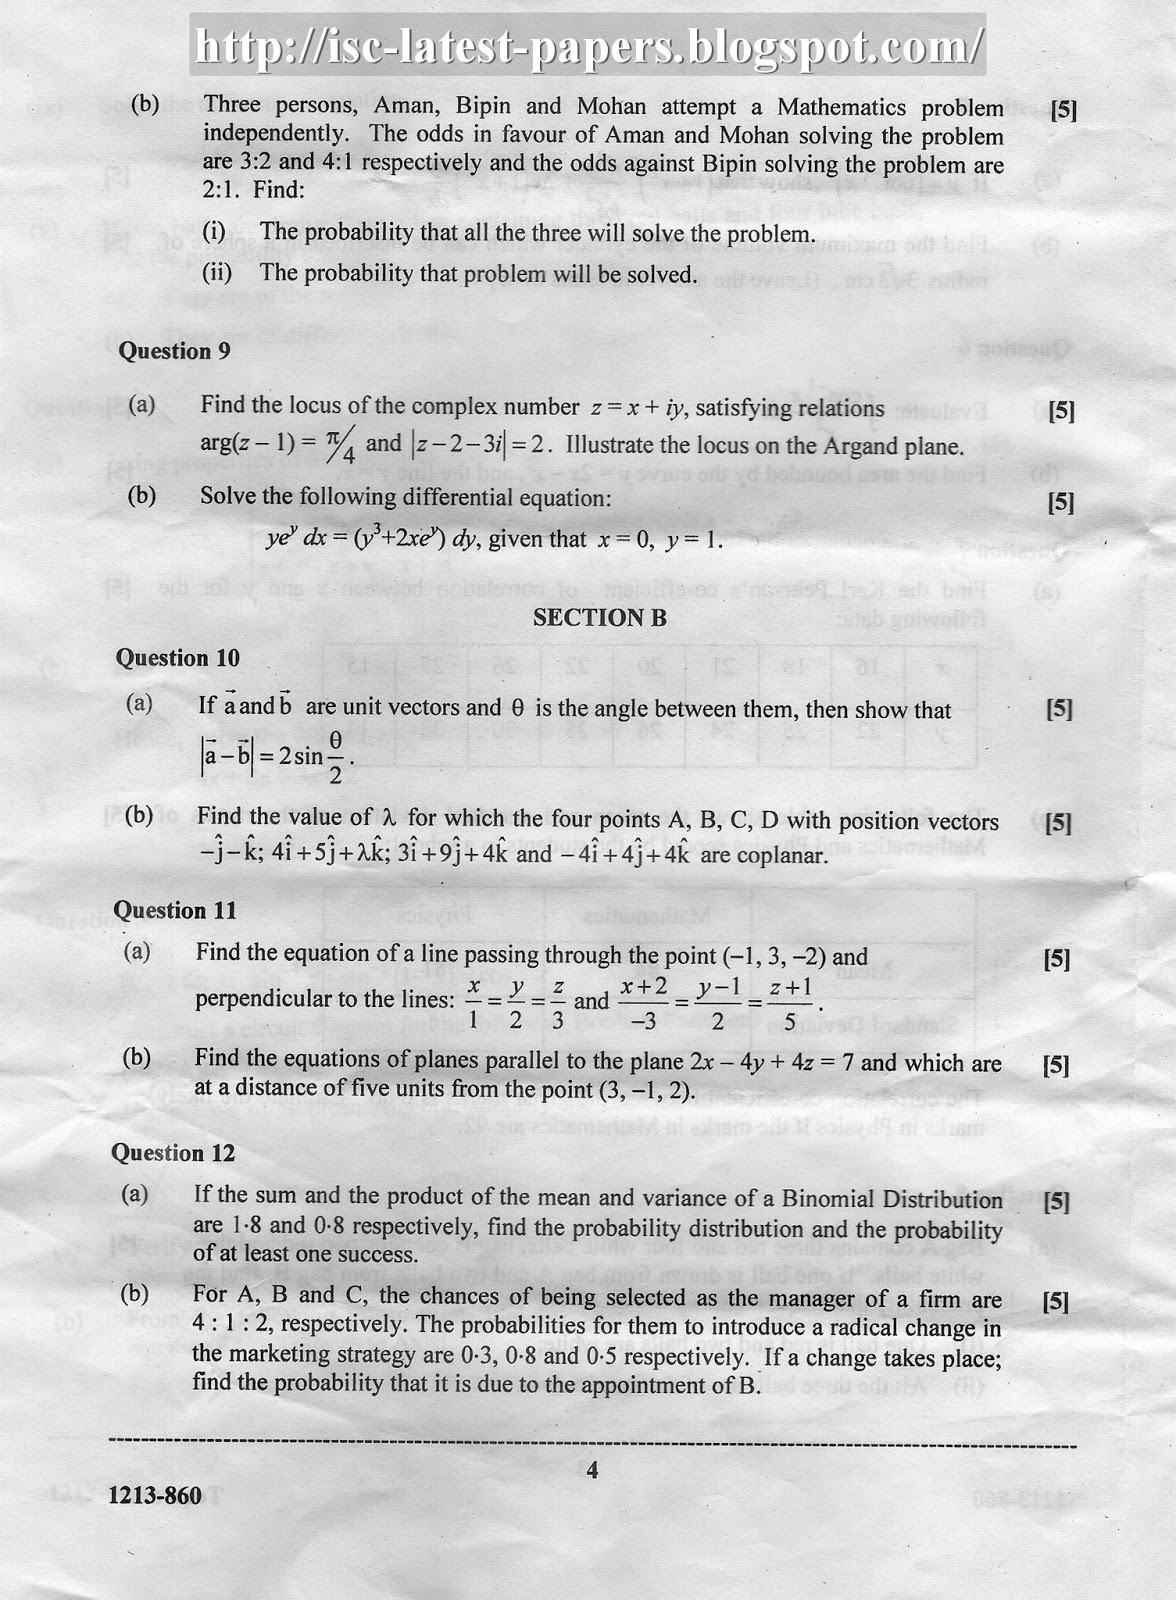 essay math question The math formula essay question type allows students to input text and math  formula within the same response, usually when a response needs further.